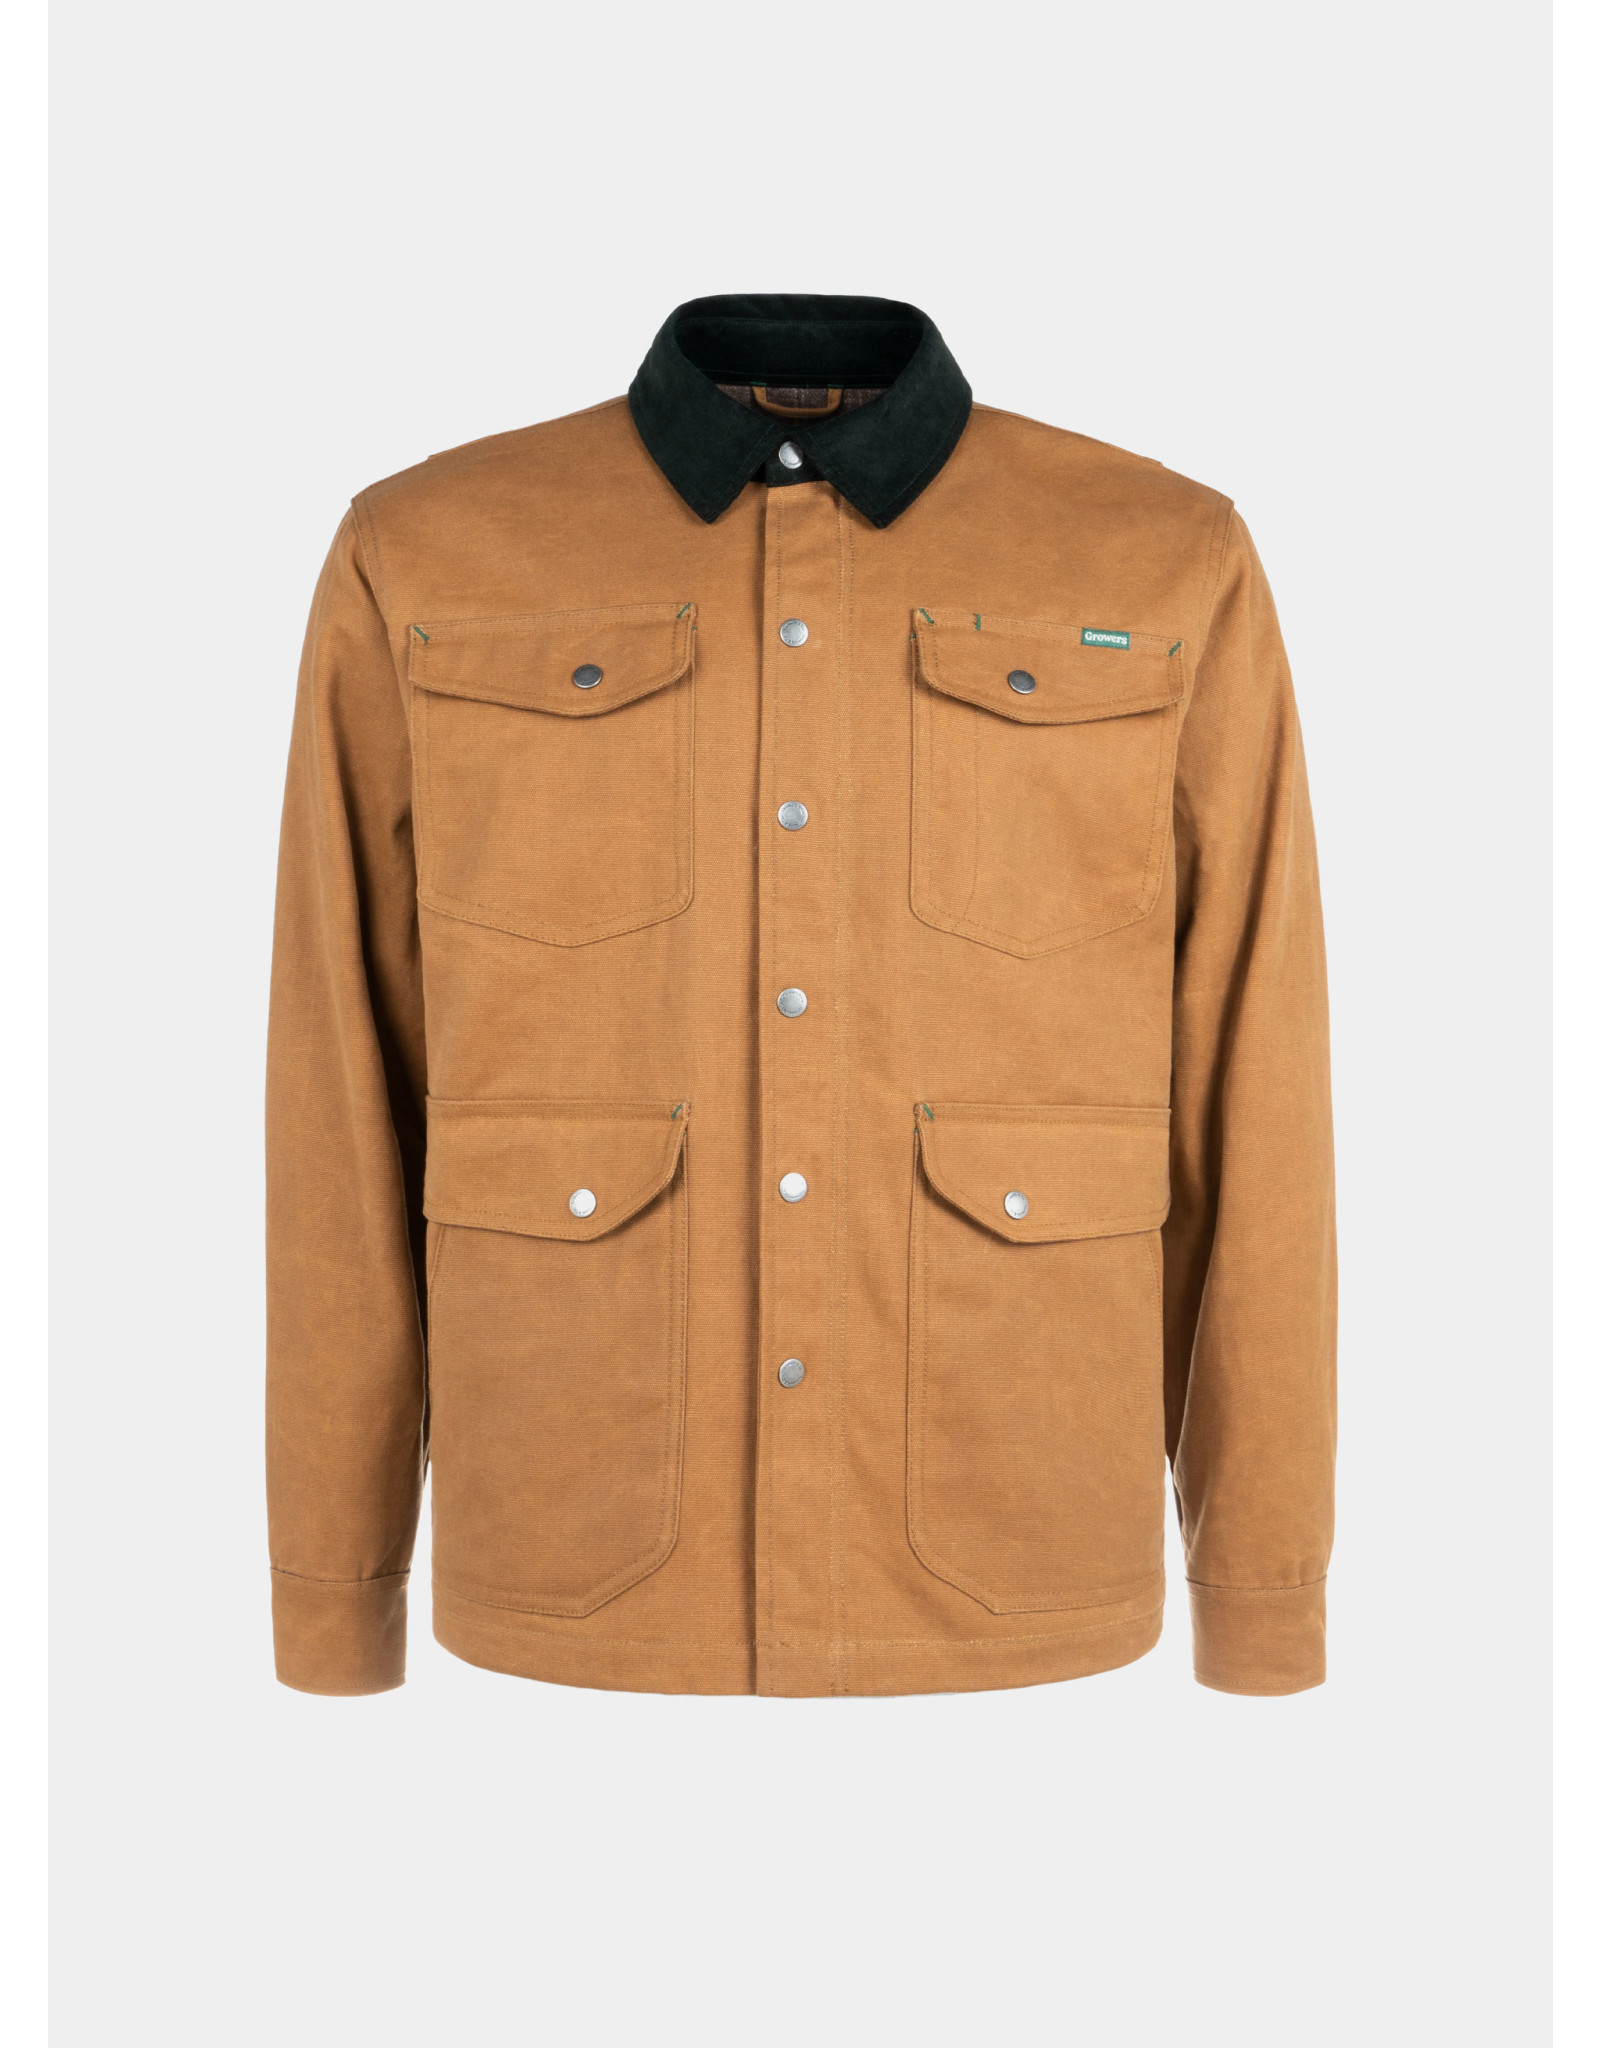 Growers&co Cherokee work jacket